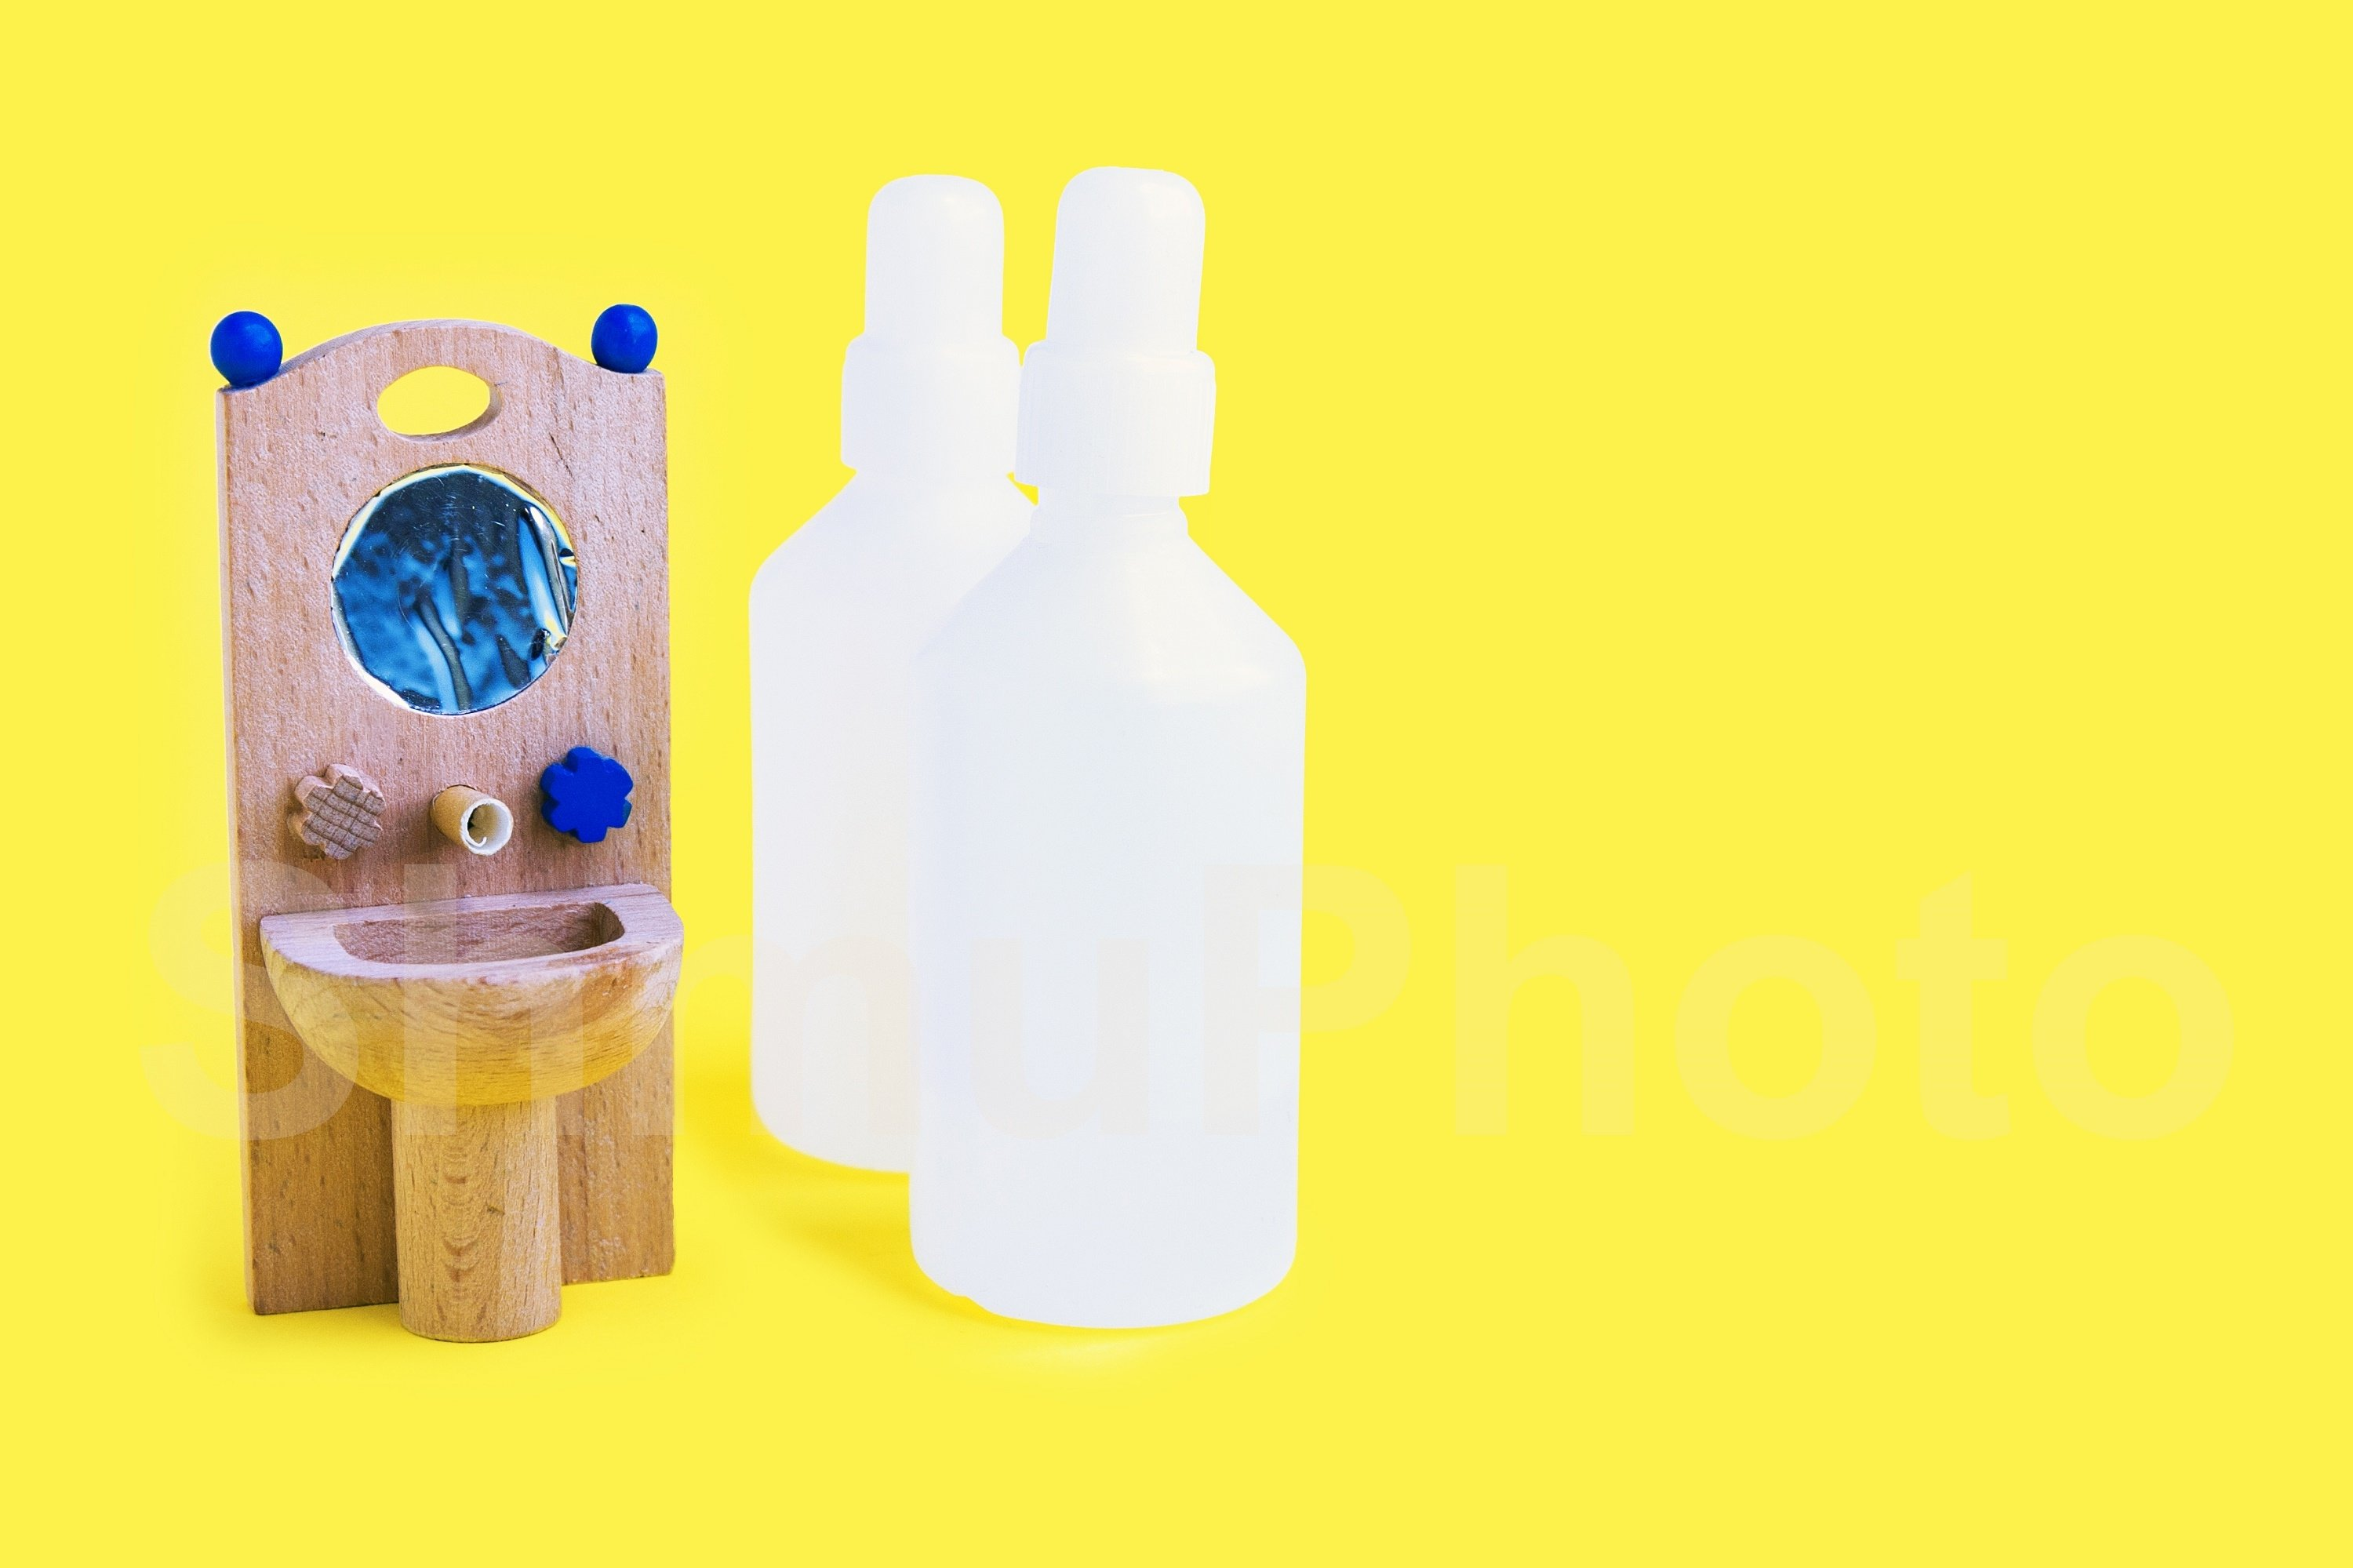 Wooden toy washbasin and anti-bacterial disinfectants example image 1